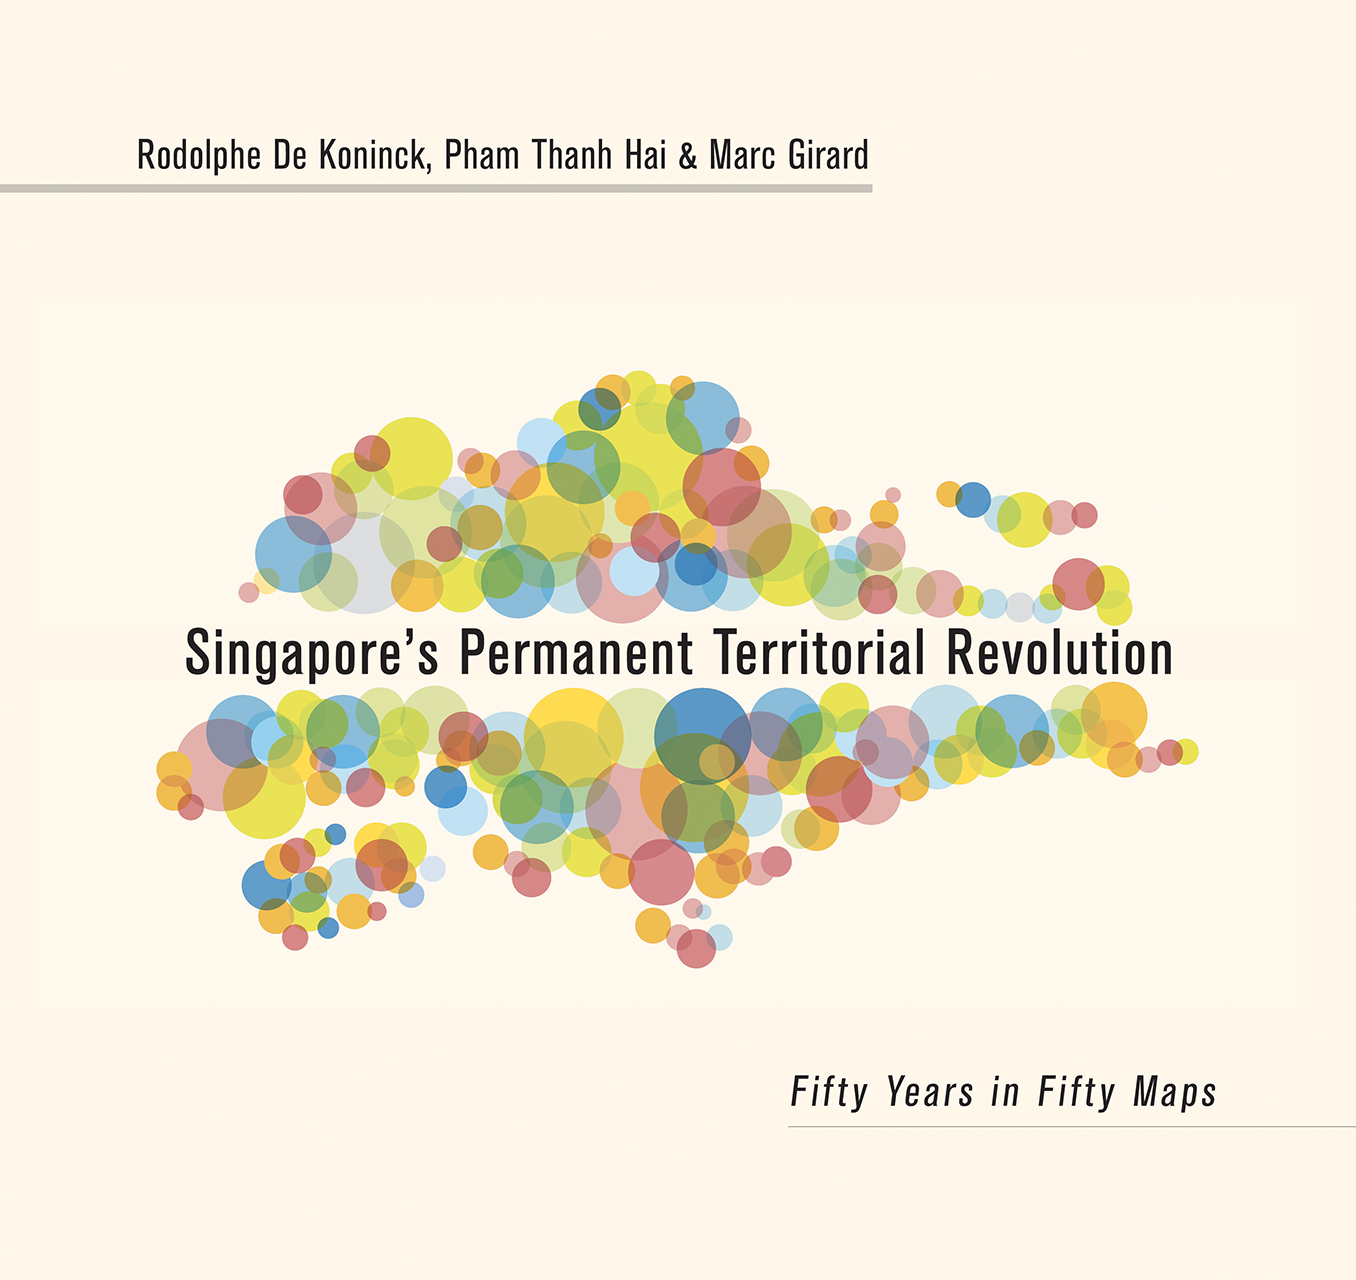 Singapore's Permanent Territorial Revolution: Fifty Years in Fifty Maps